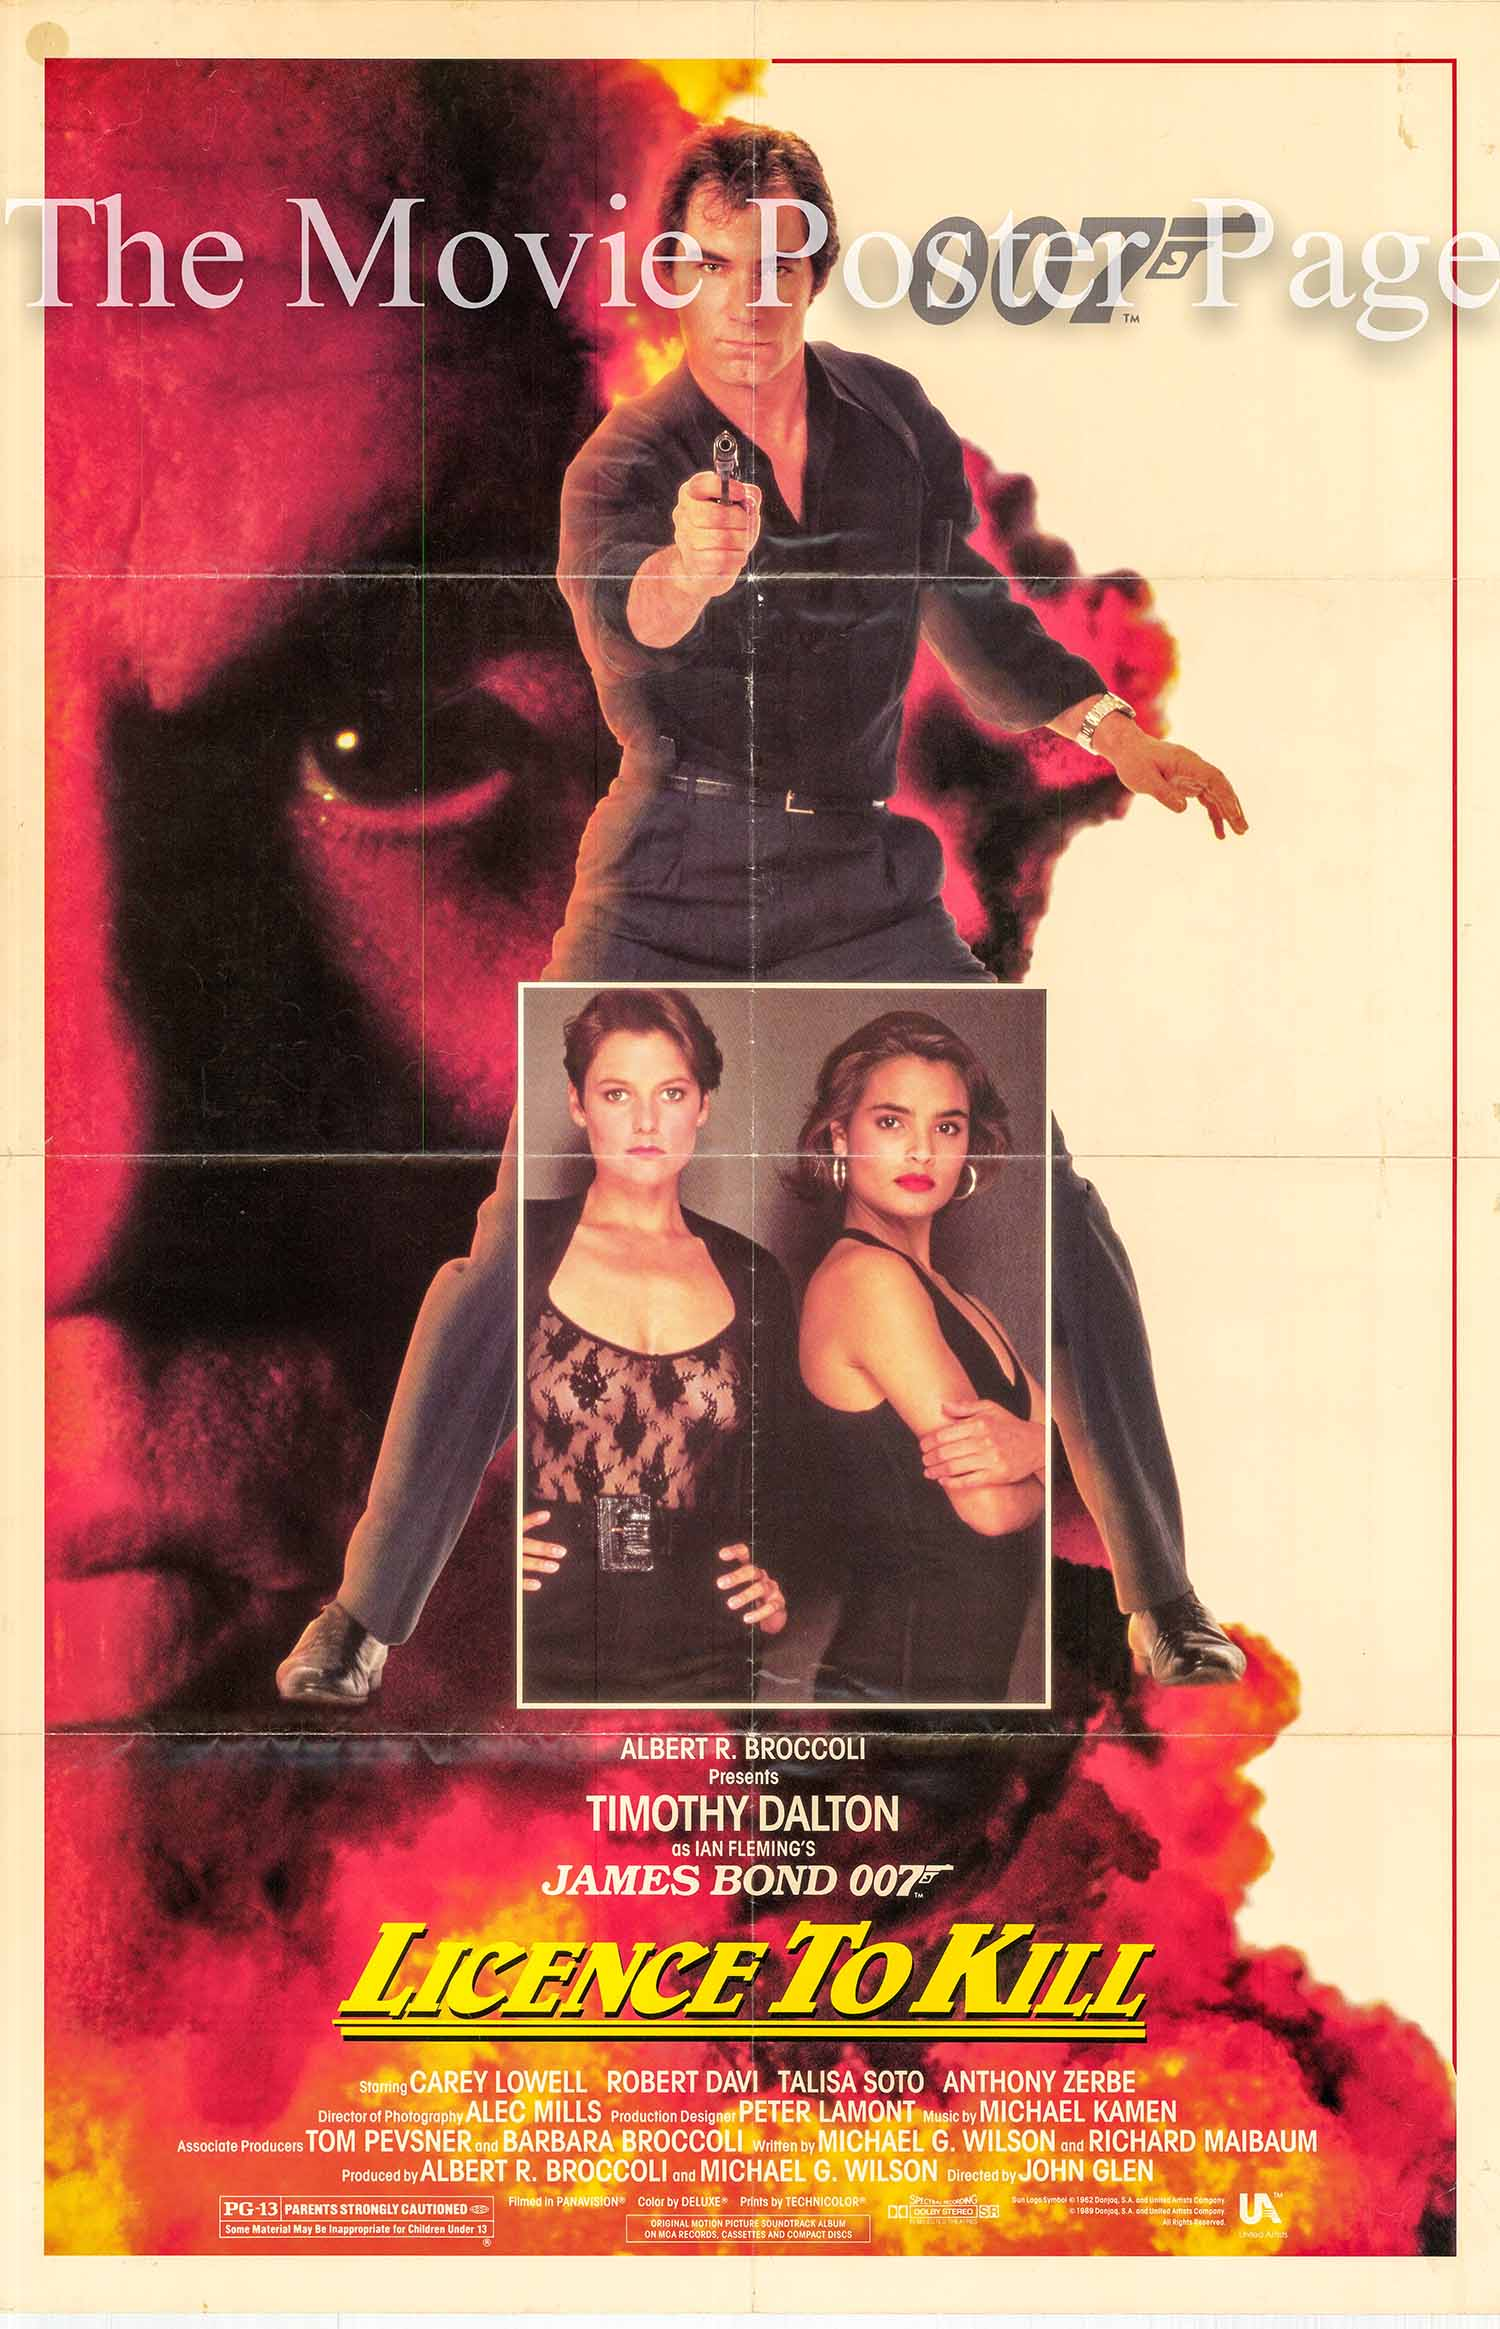 Pictured is a US one-sheet promotional poster made to promote the 1989 John Glen film License to Kill starring Timothy Dalton as James Bond.